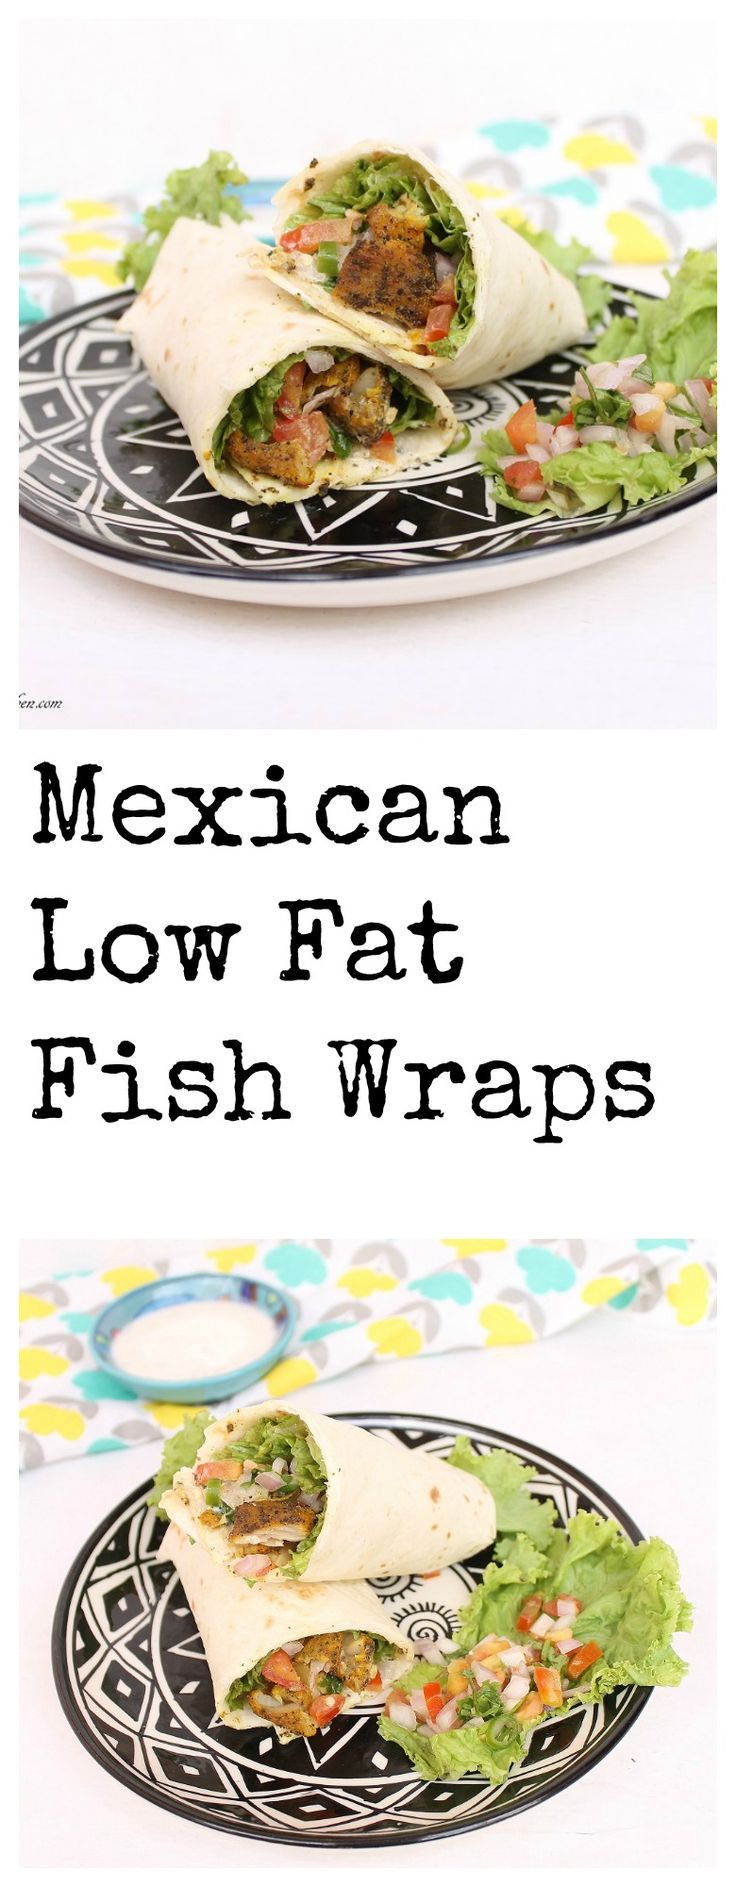 Mexican Low Fat Fish Wraps, FIsh wraps, low fat fish wraps, Mexican recipe.  #fish #Mexican #fishwraps #breakfast #snacks